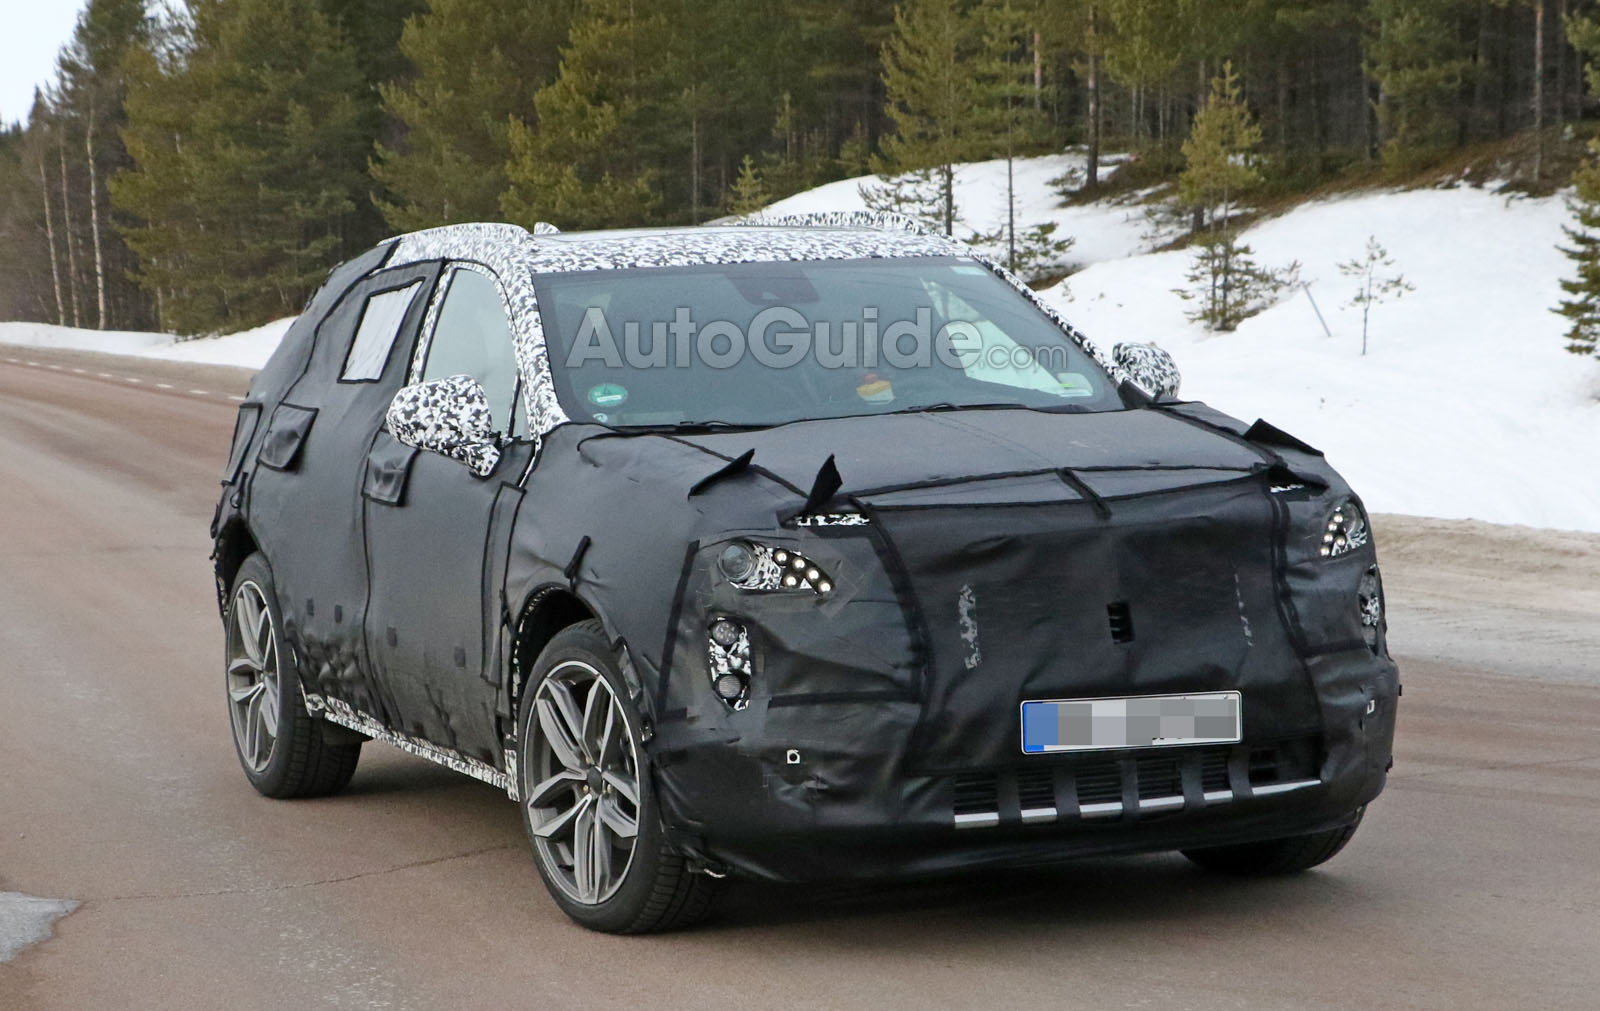 Cadillac XT3 Compact Crossover Spied Testing for the First ...